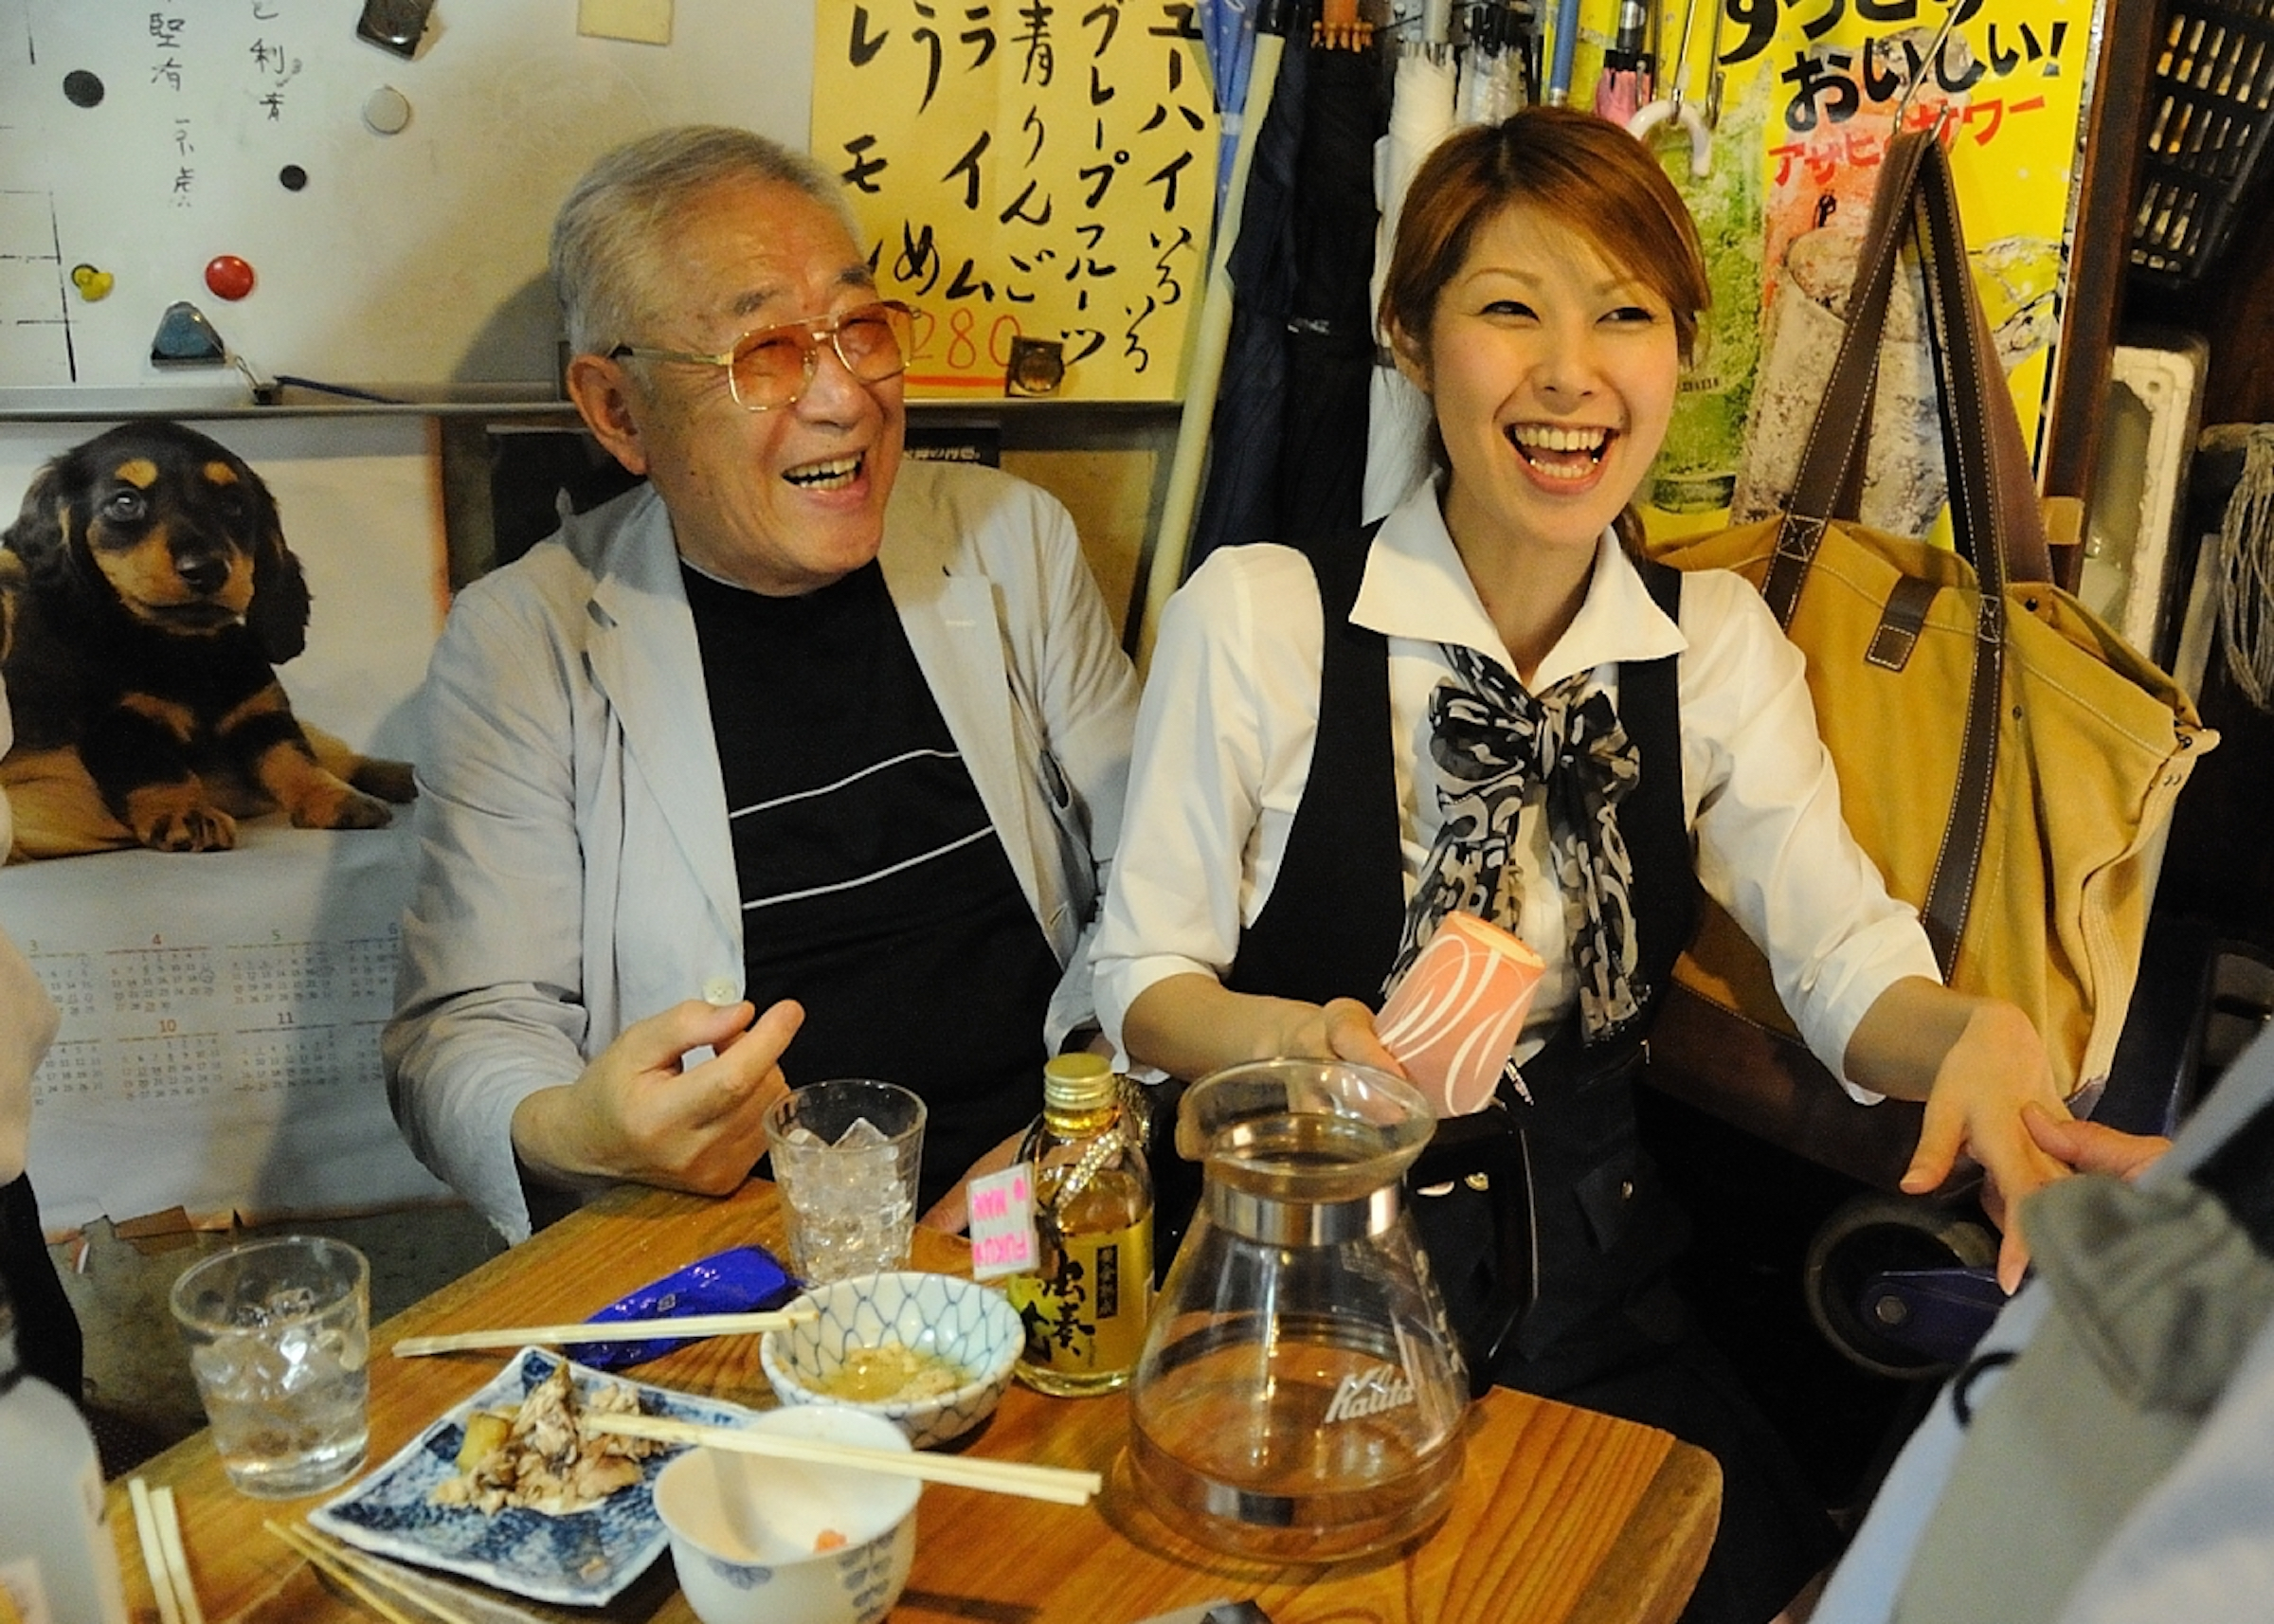 Photograph of two people sitting at a table.